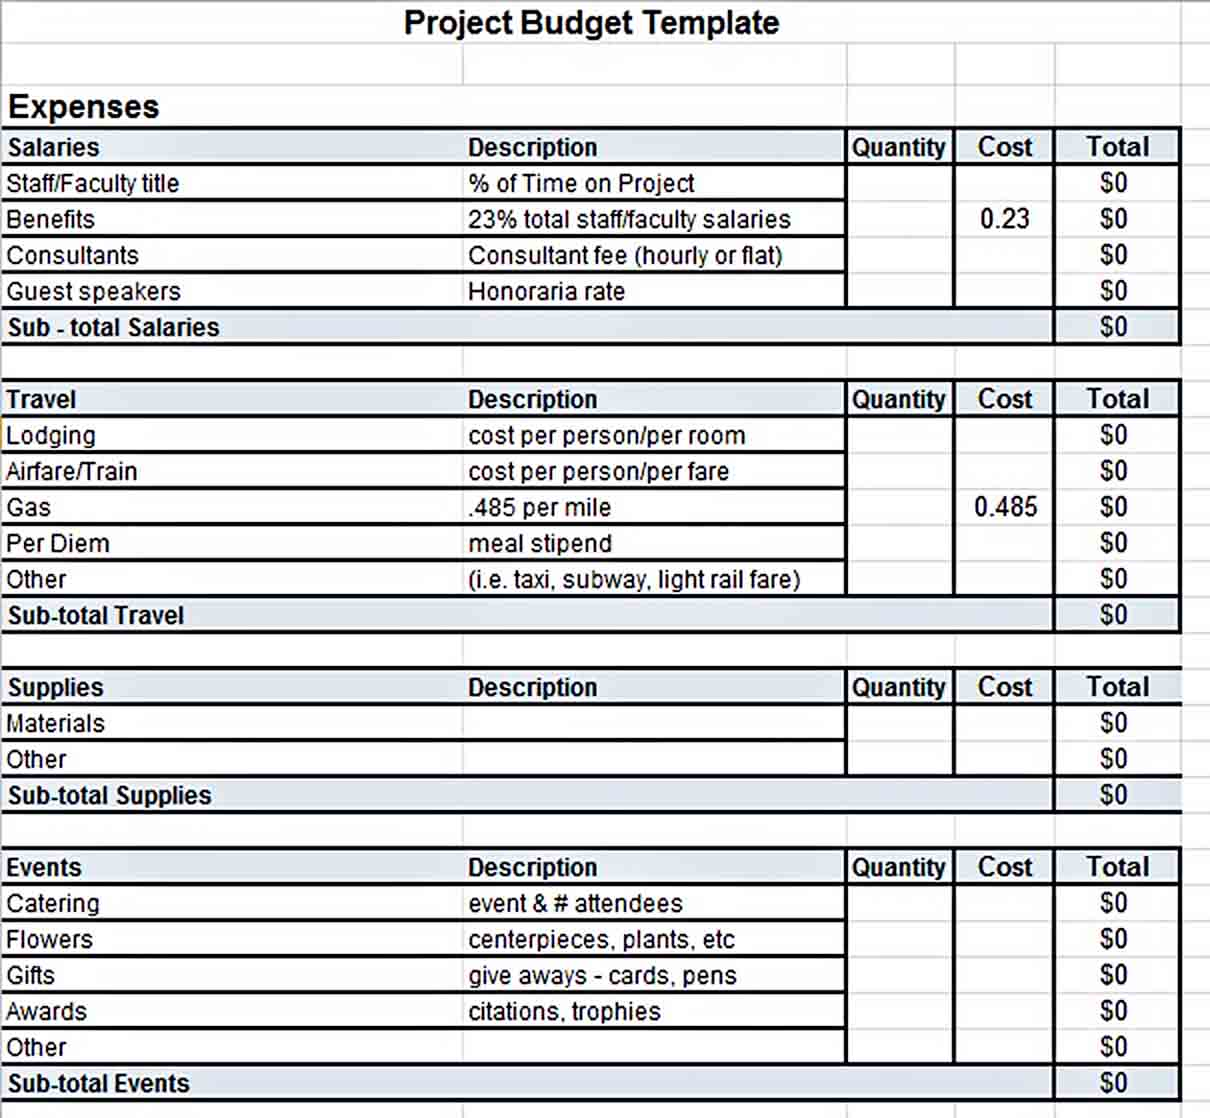 Editable Project Budget Template Excel Download sample